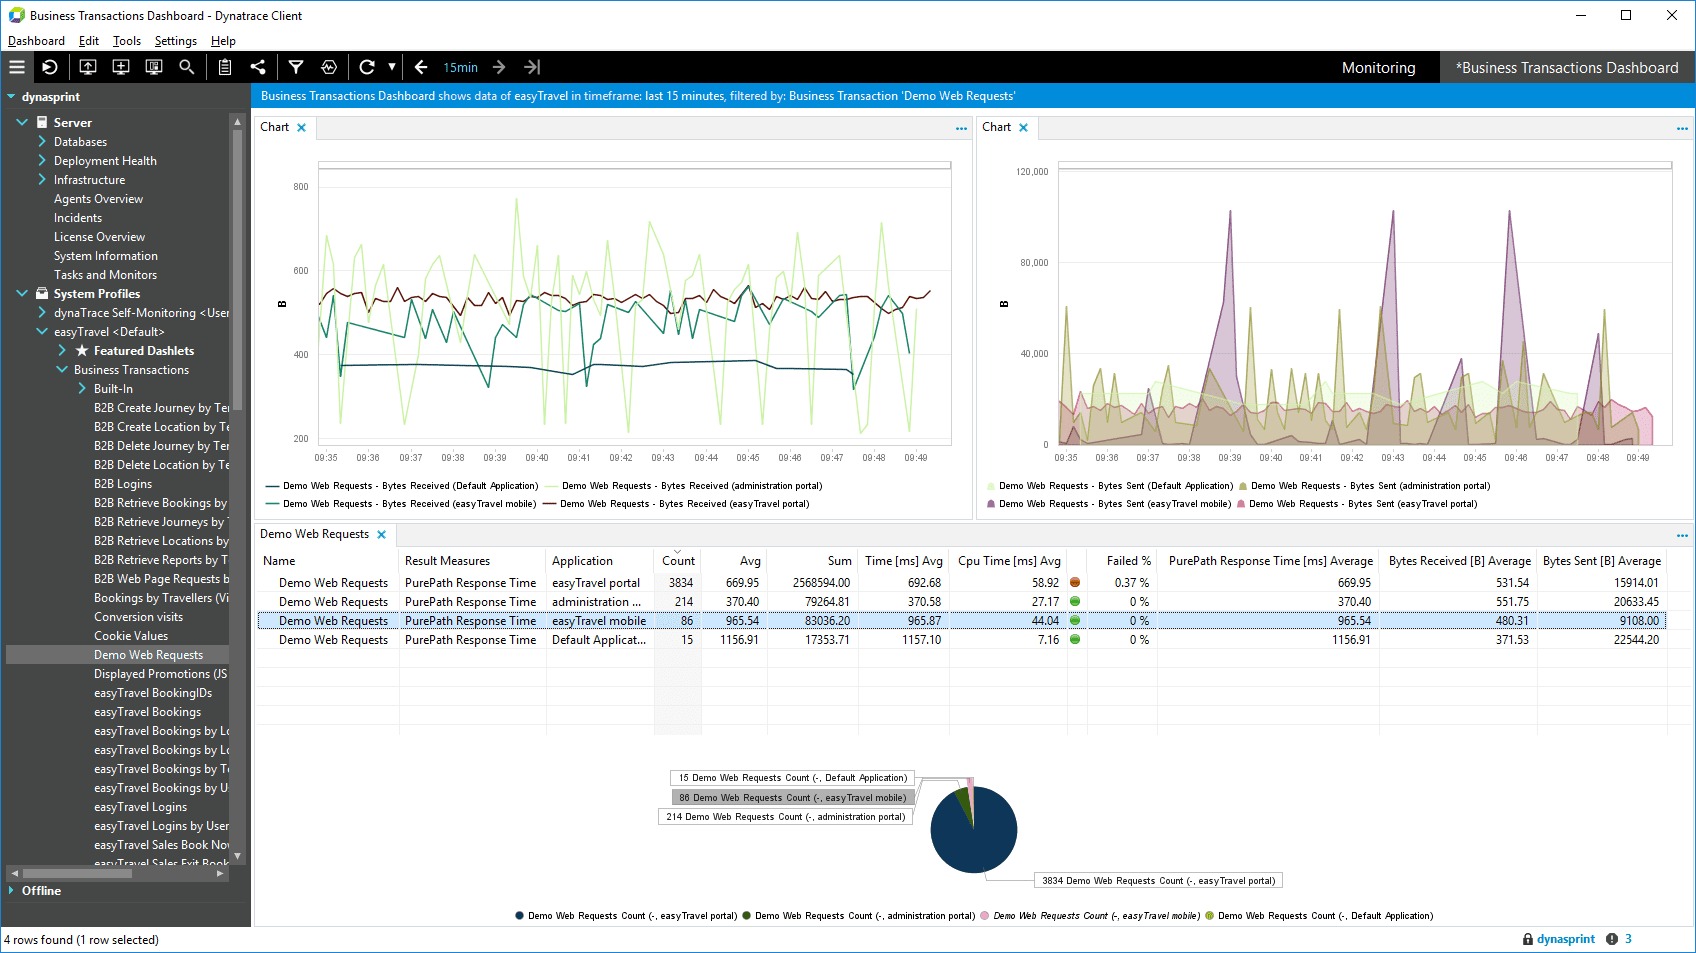 Charts for the new results have been added